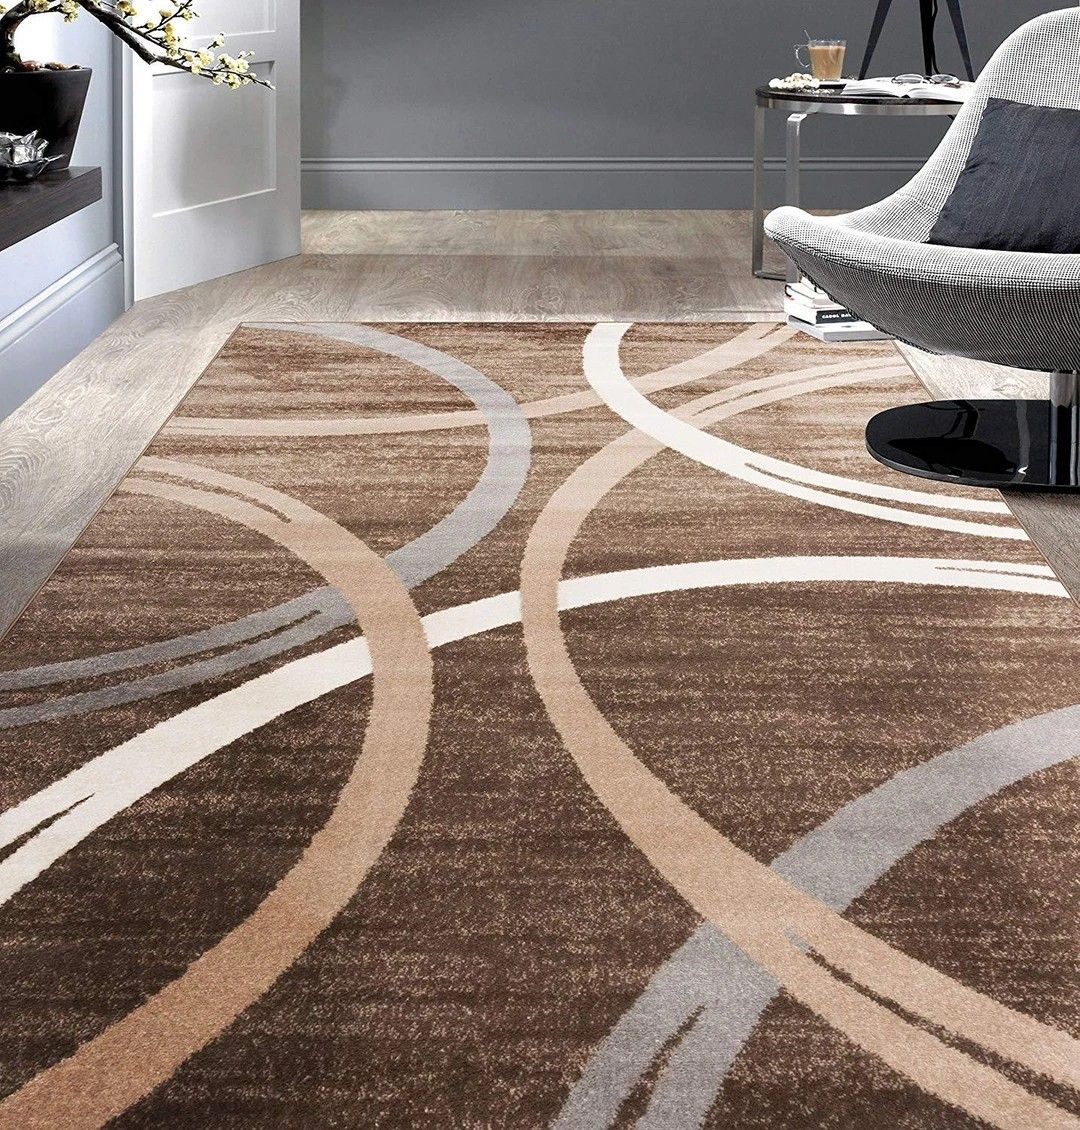 Contemporary Circles Pattern Brown Beige Soft Area Rugs In 2020 Area Rugs Area Rugs For Sale Rugs